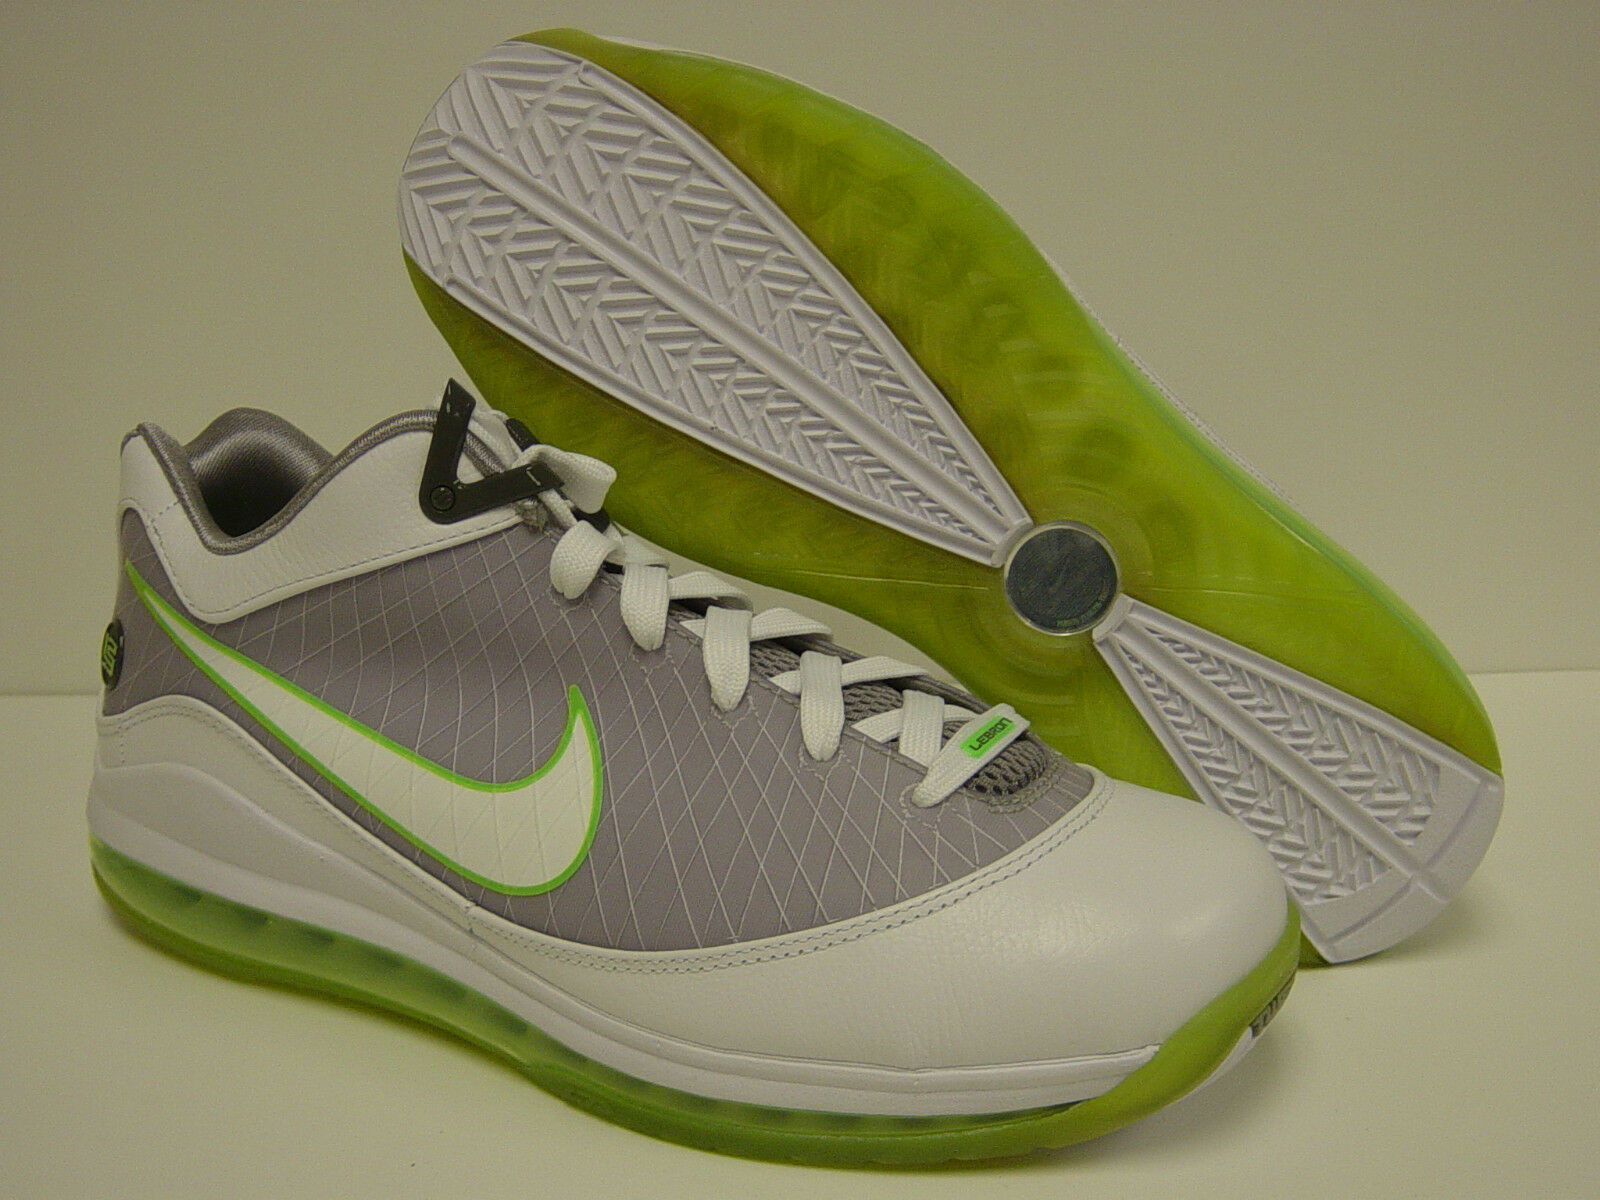 NEW Mens NIKE Air Max LEBRON VII Low 412230 001 White Green Sneakers Shoes